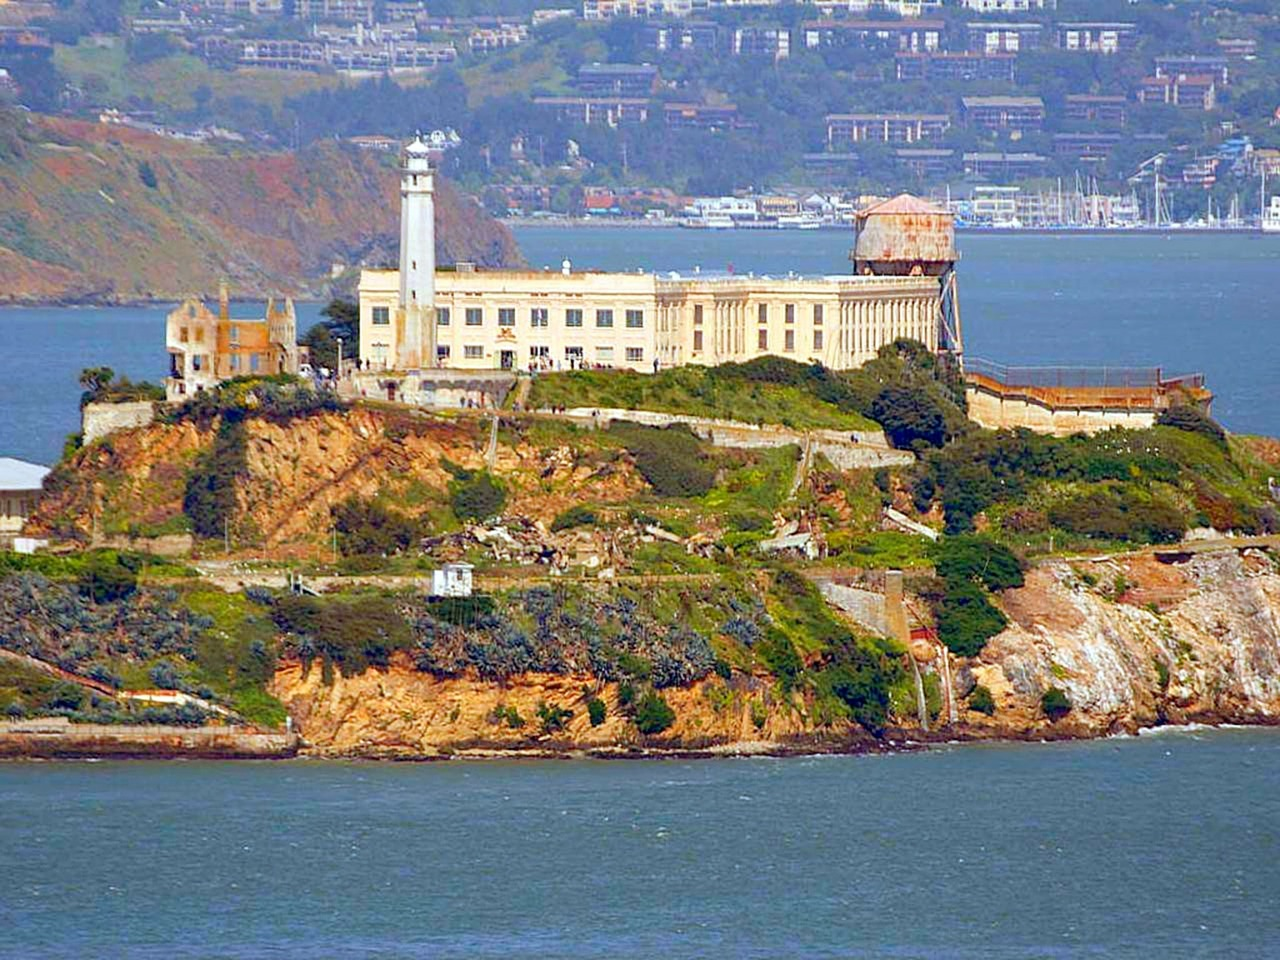 photo of Alcatraz island from afar